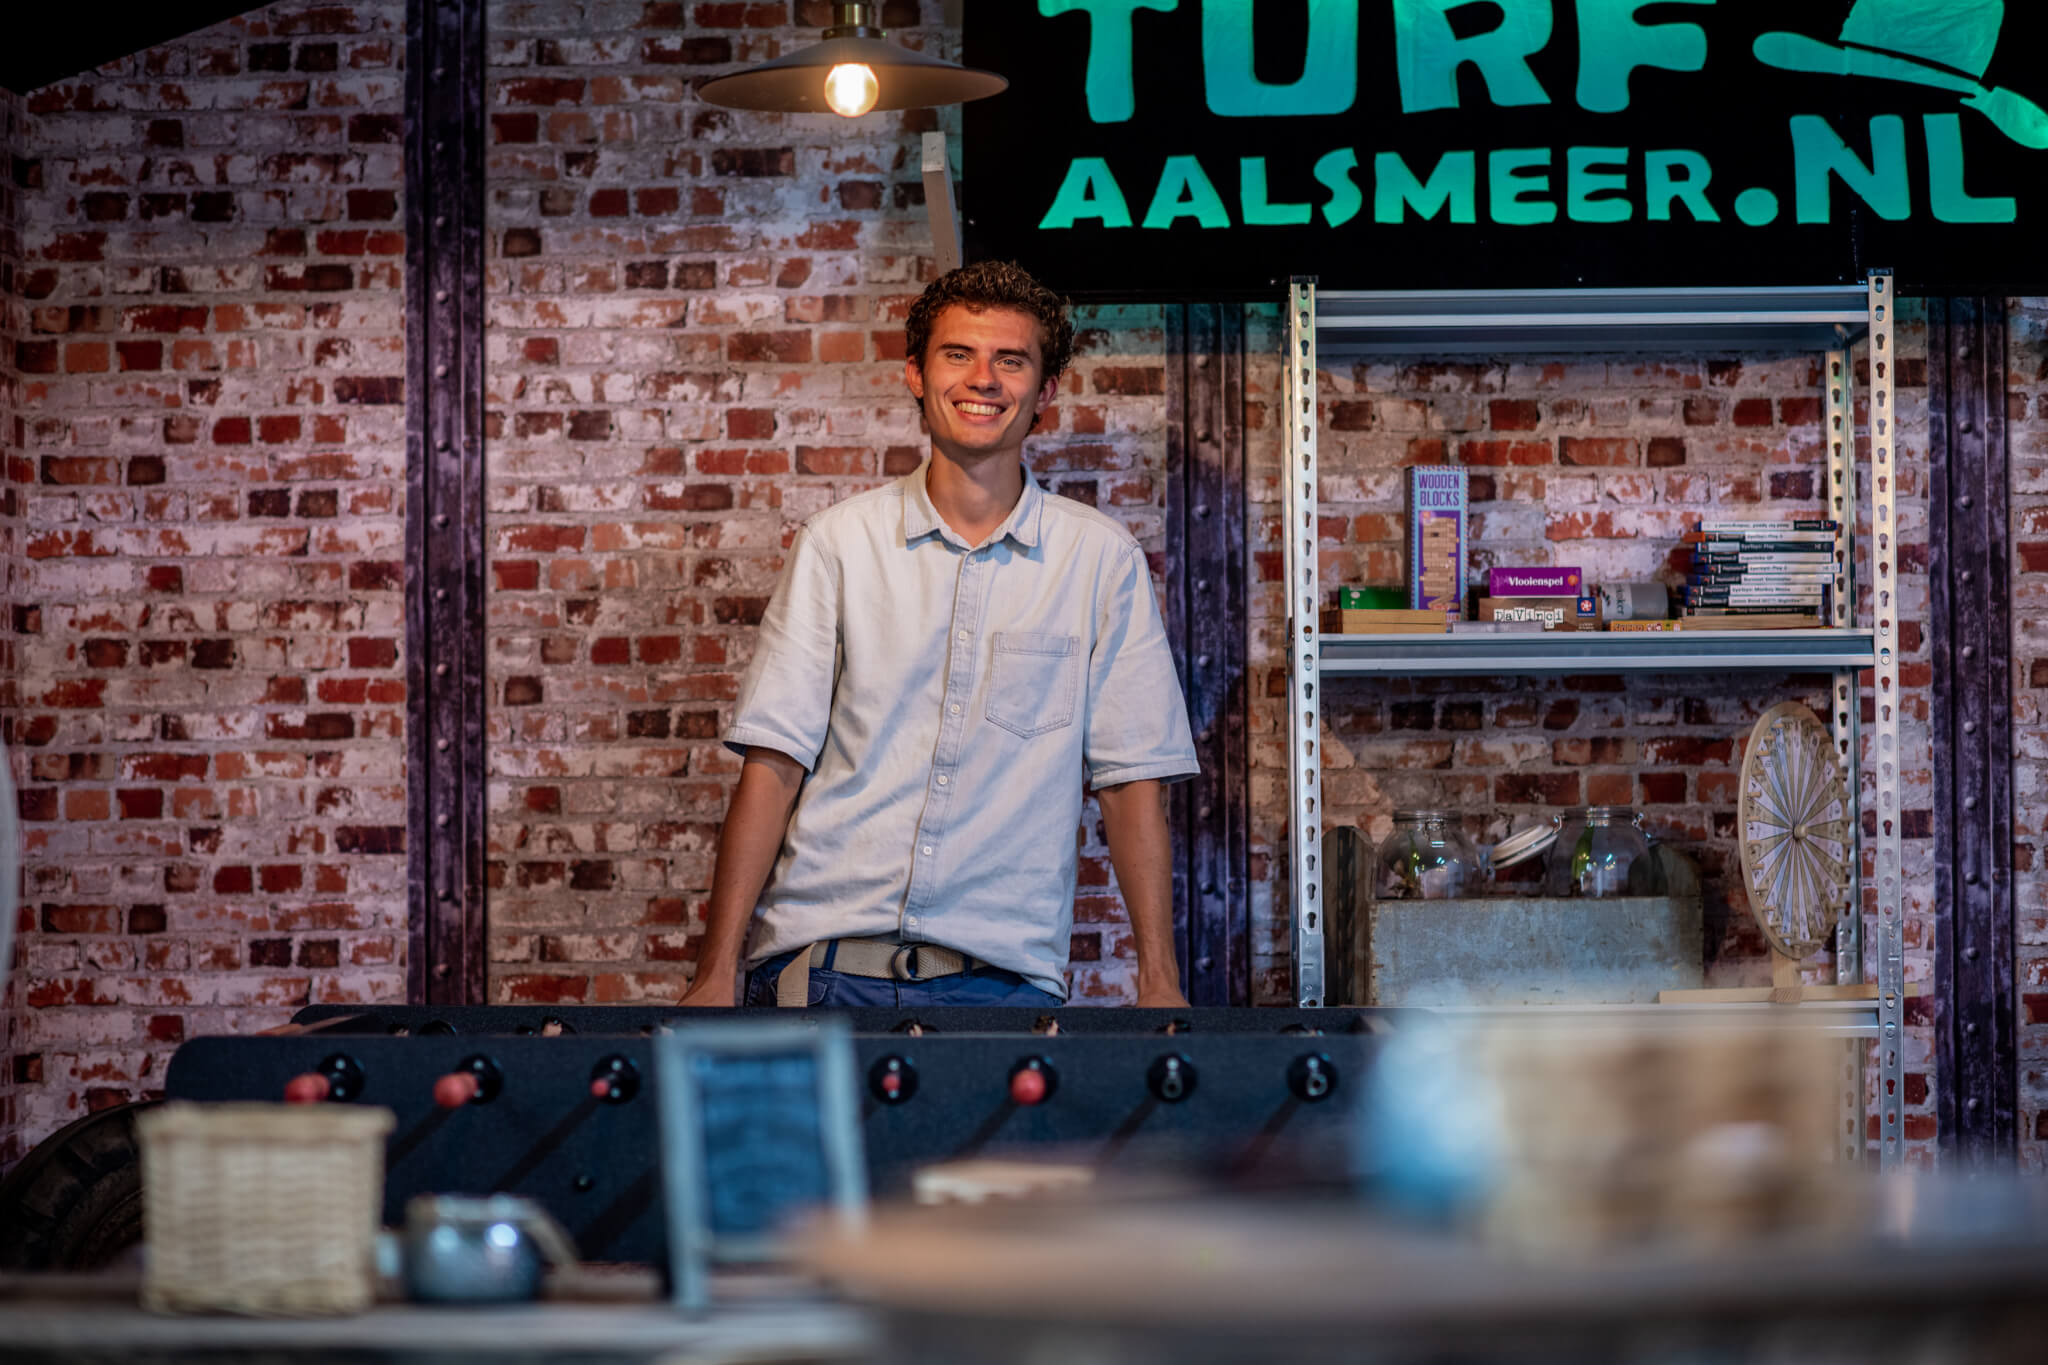 Real Life Gaming - Turf Aalsmeer